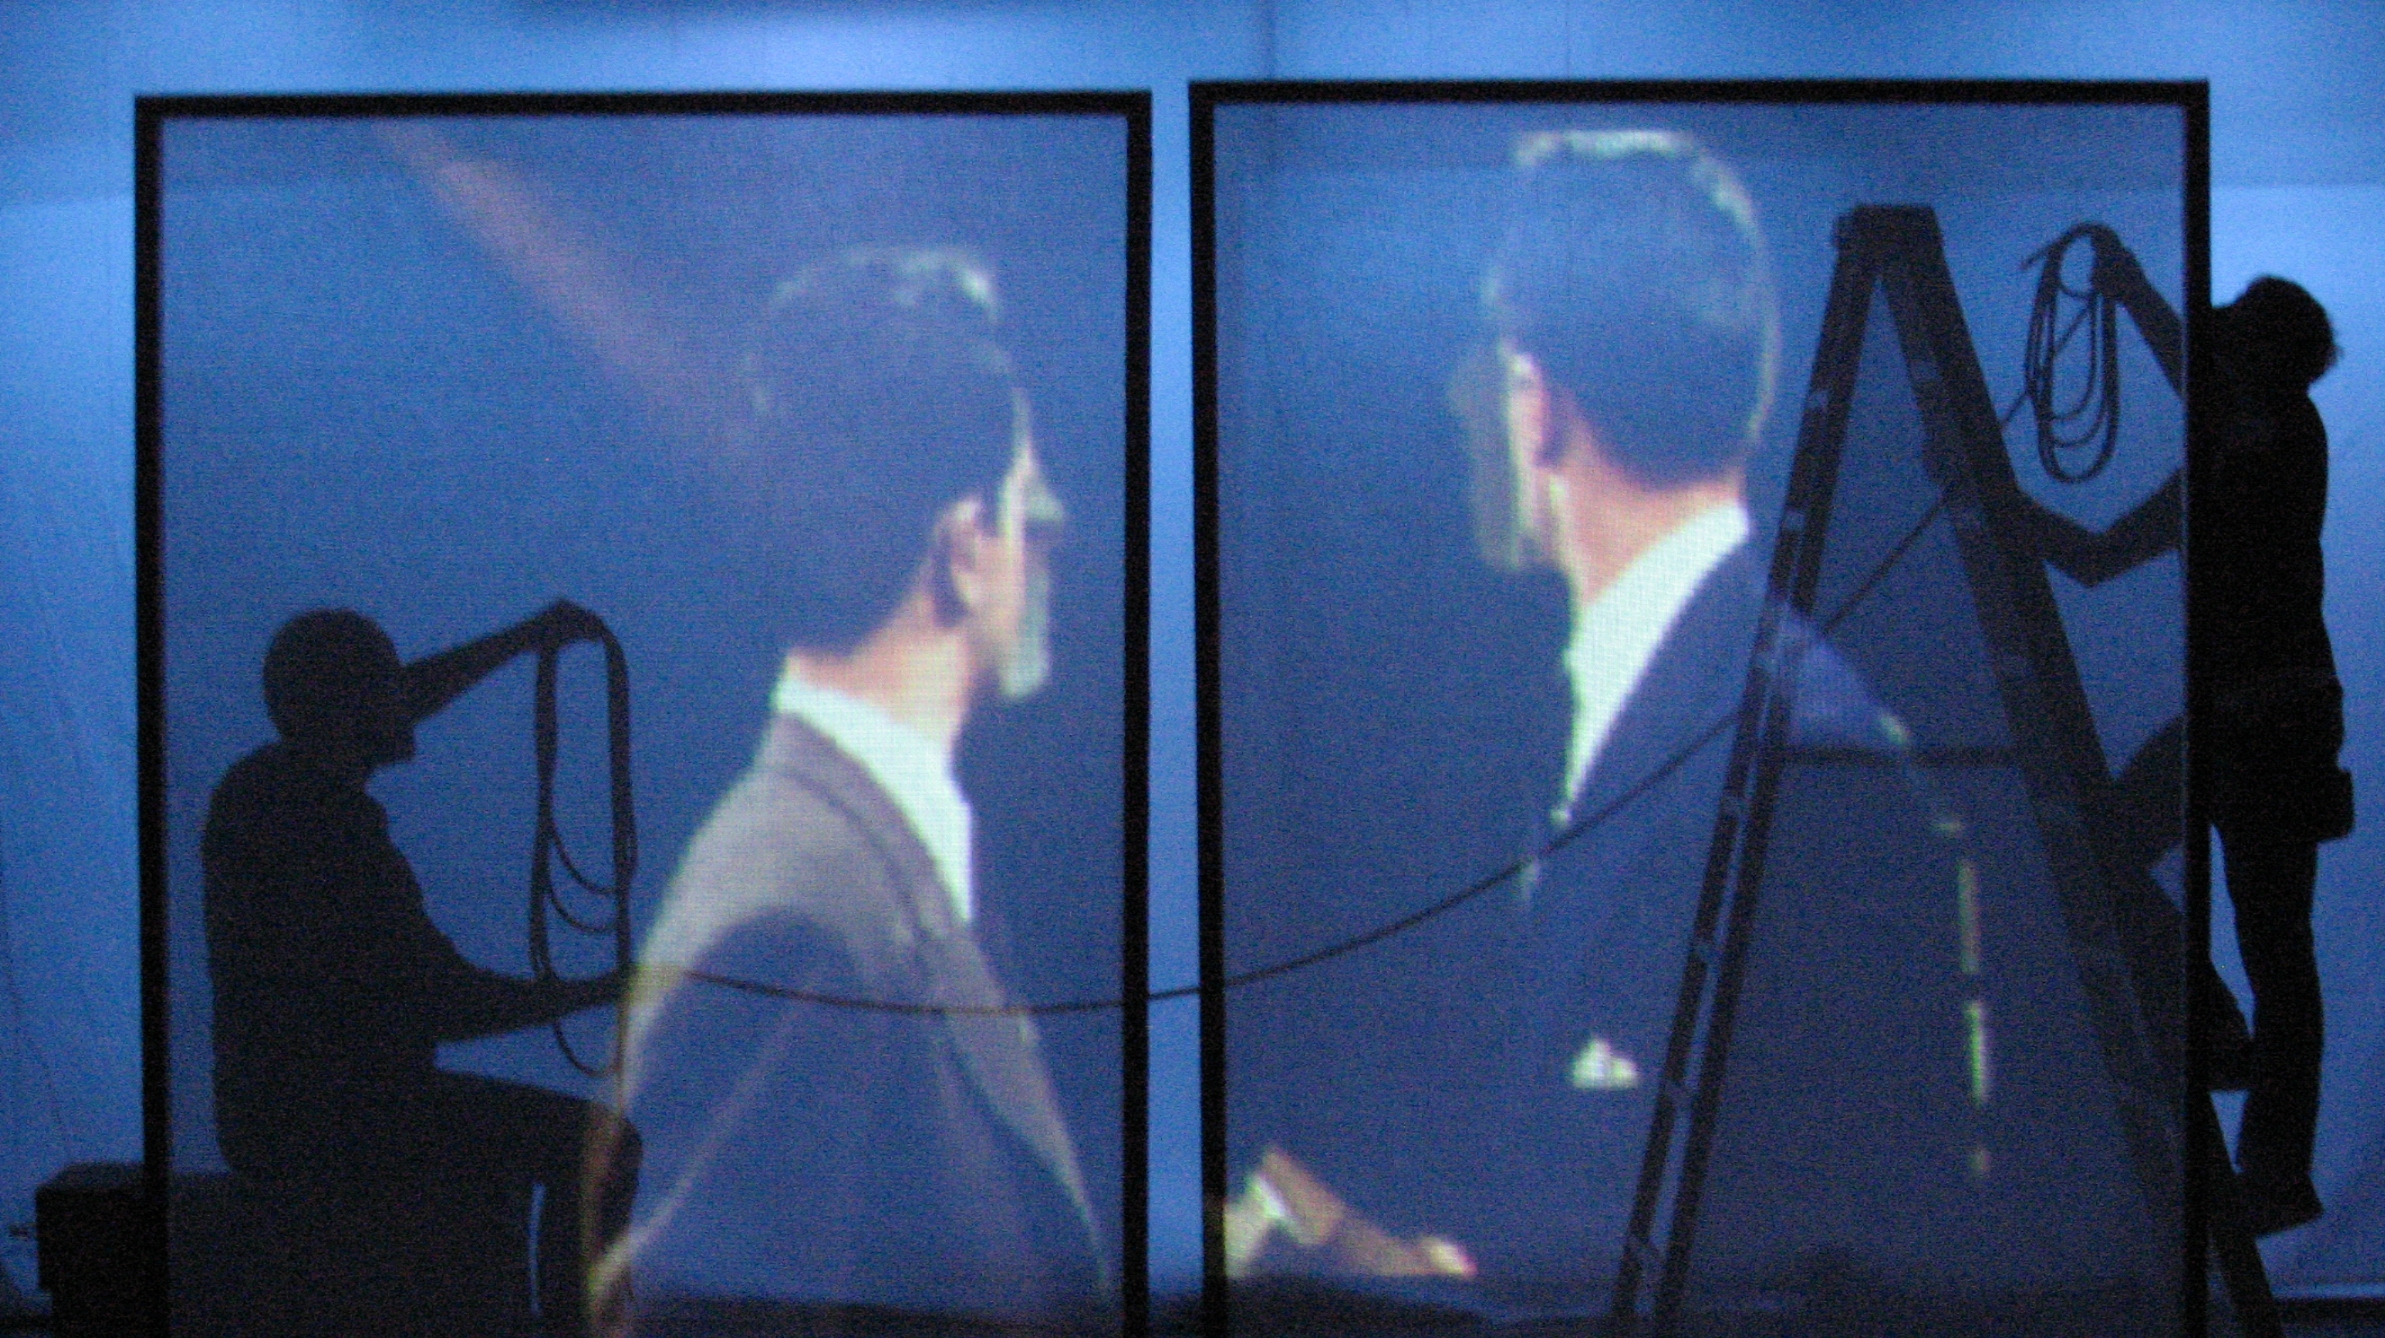 "In Farrington's  Gin & ""It""  his video theater work mirrors the technical feats of Hitchcock's daring film experiment in  Rope  with its own boundary-pushing melding of projected imagery and live drama. His first effort  The Passion Project  was a hybrid film theater installation piece that was acclaimed for its inventive take on the 1928 archival silent film masterpiece  The Passion of Joan of Arc  by Carl Theodore Dreyer.   Photo Credit: Reid Farrington"